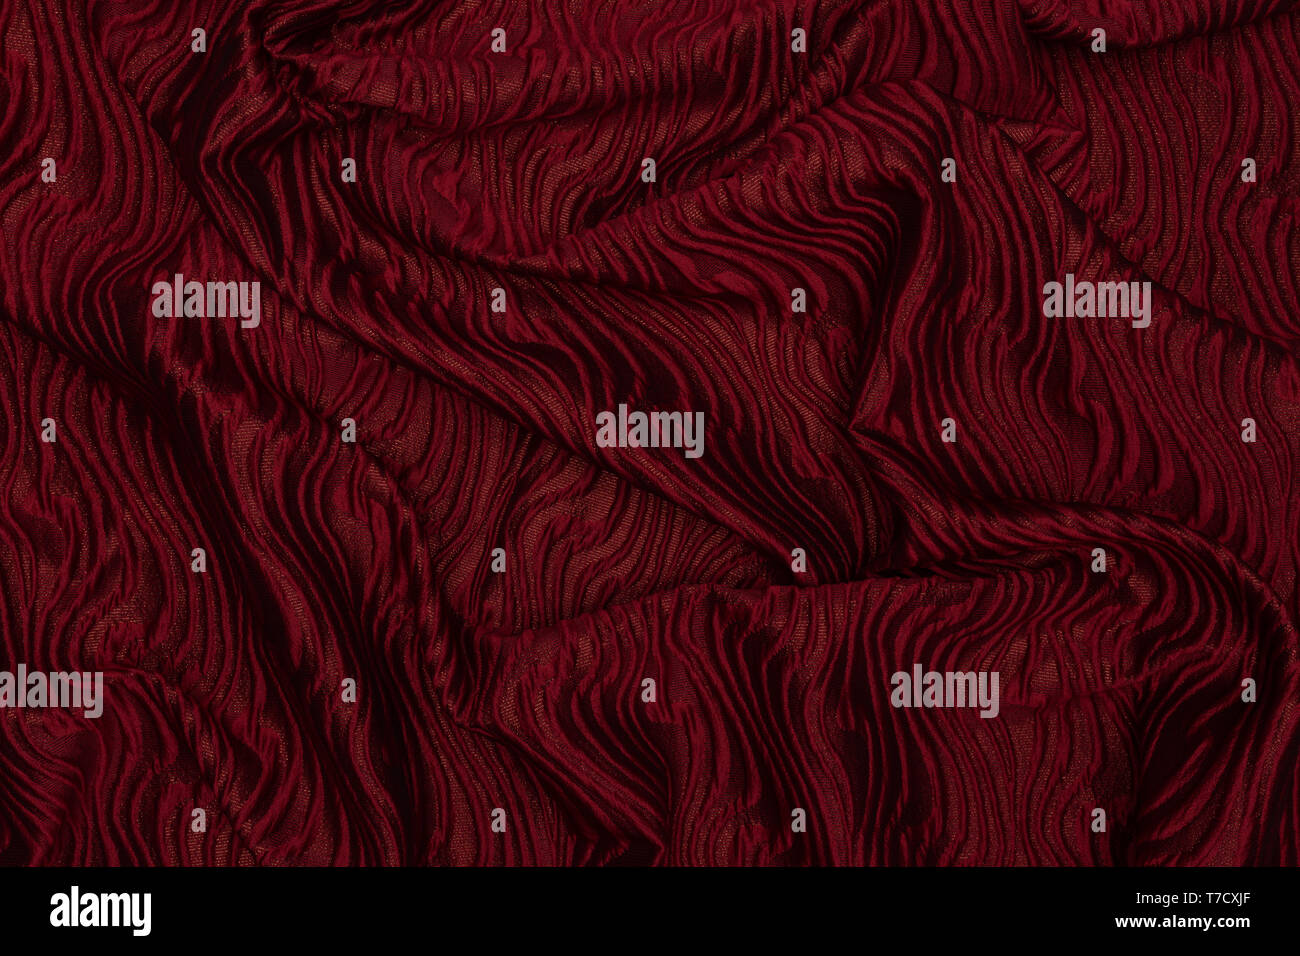 Elegant Red Shiny Fabric With Corrugated Fabric Texture Stock Photo